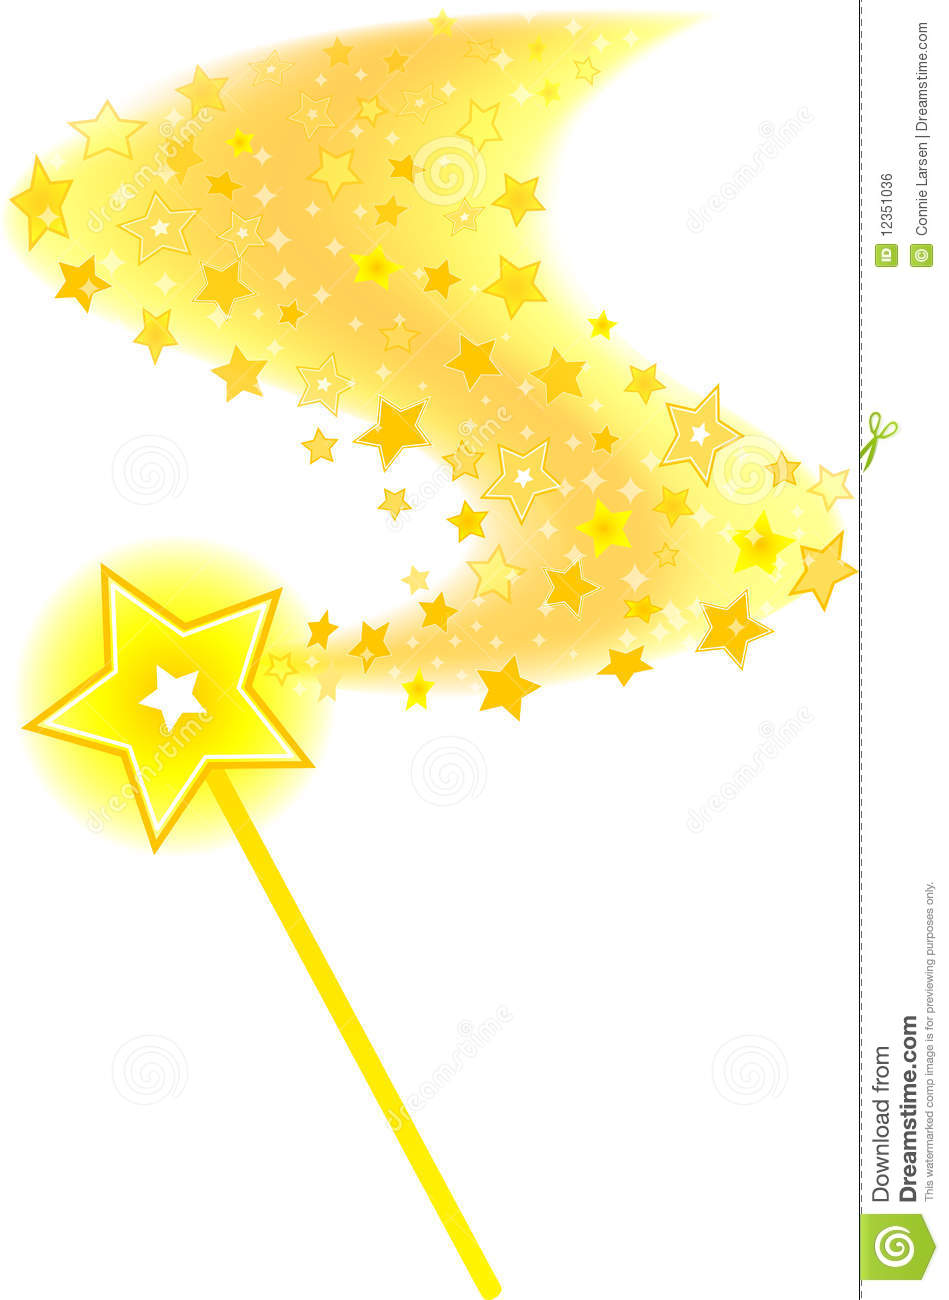 Magic Wand Star Trail Royalty Free Stock Image.